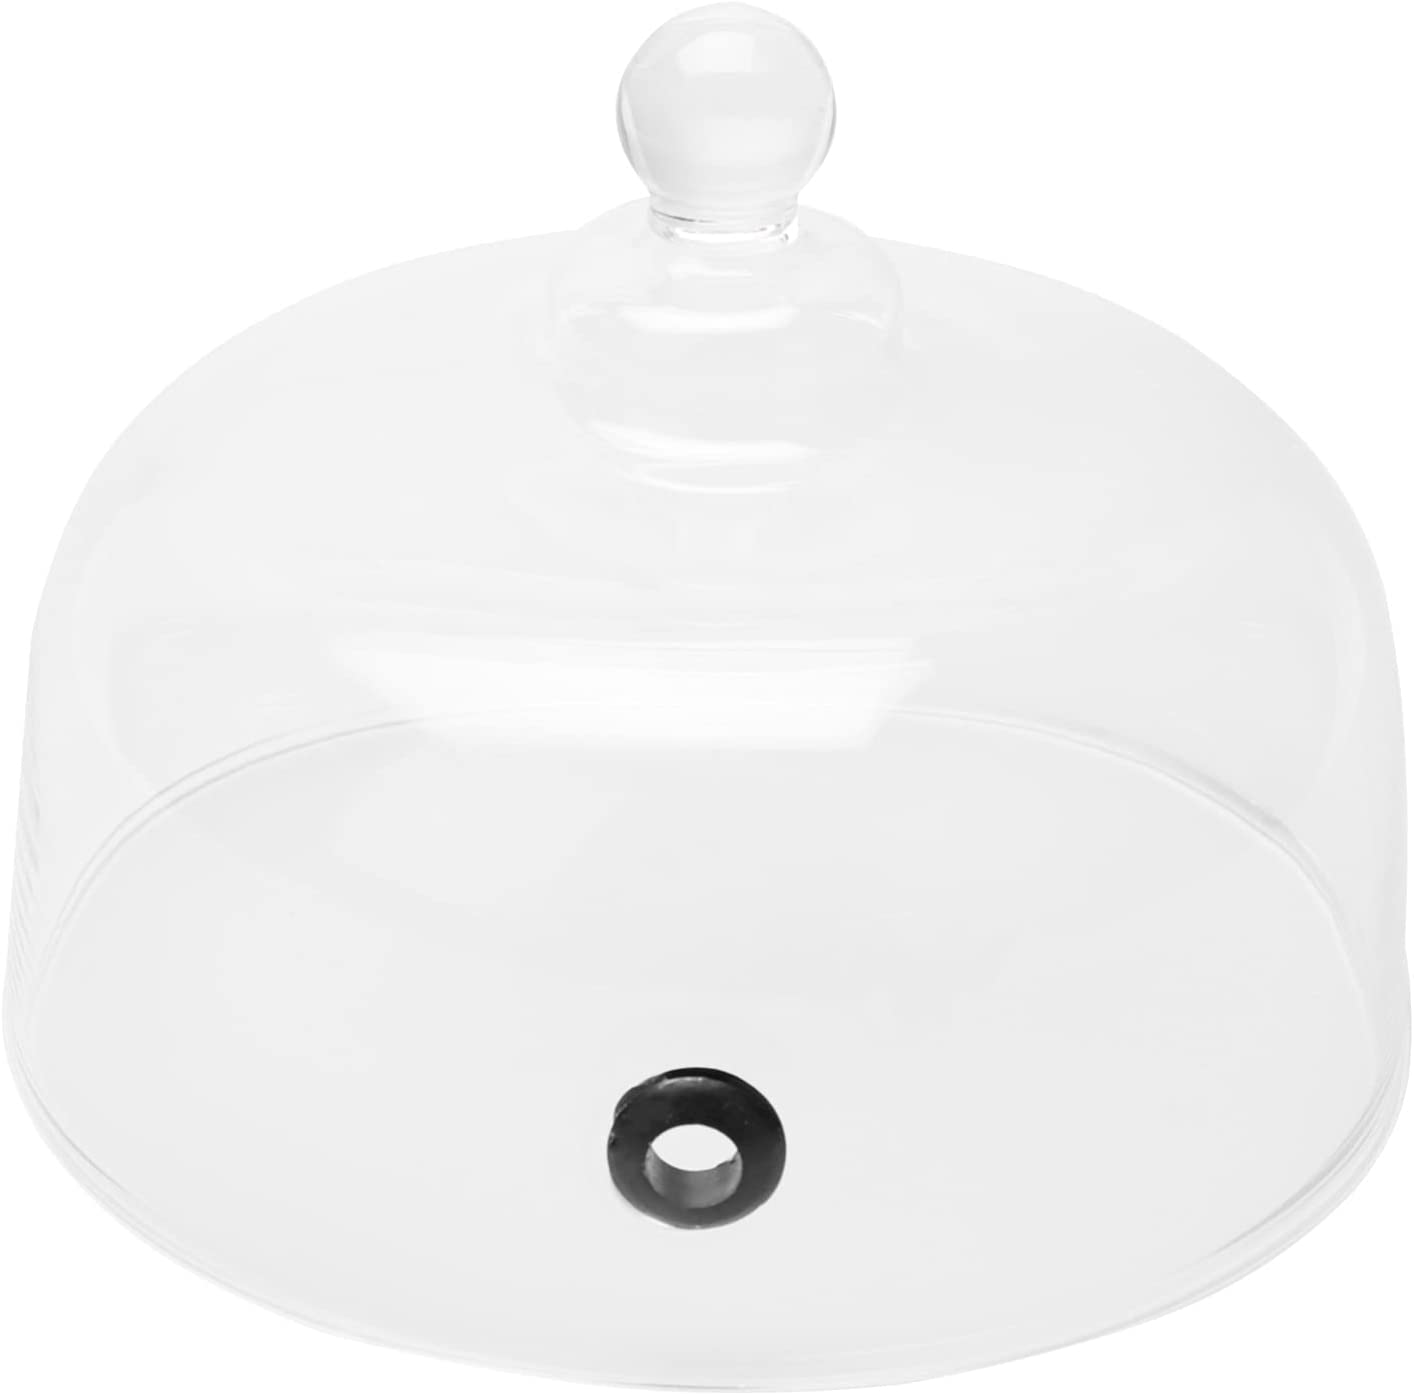 DOITOOL Clear Sales for sale Dome Cake Cover Beauty products Cloche Smoking Ca Glass